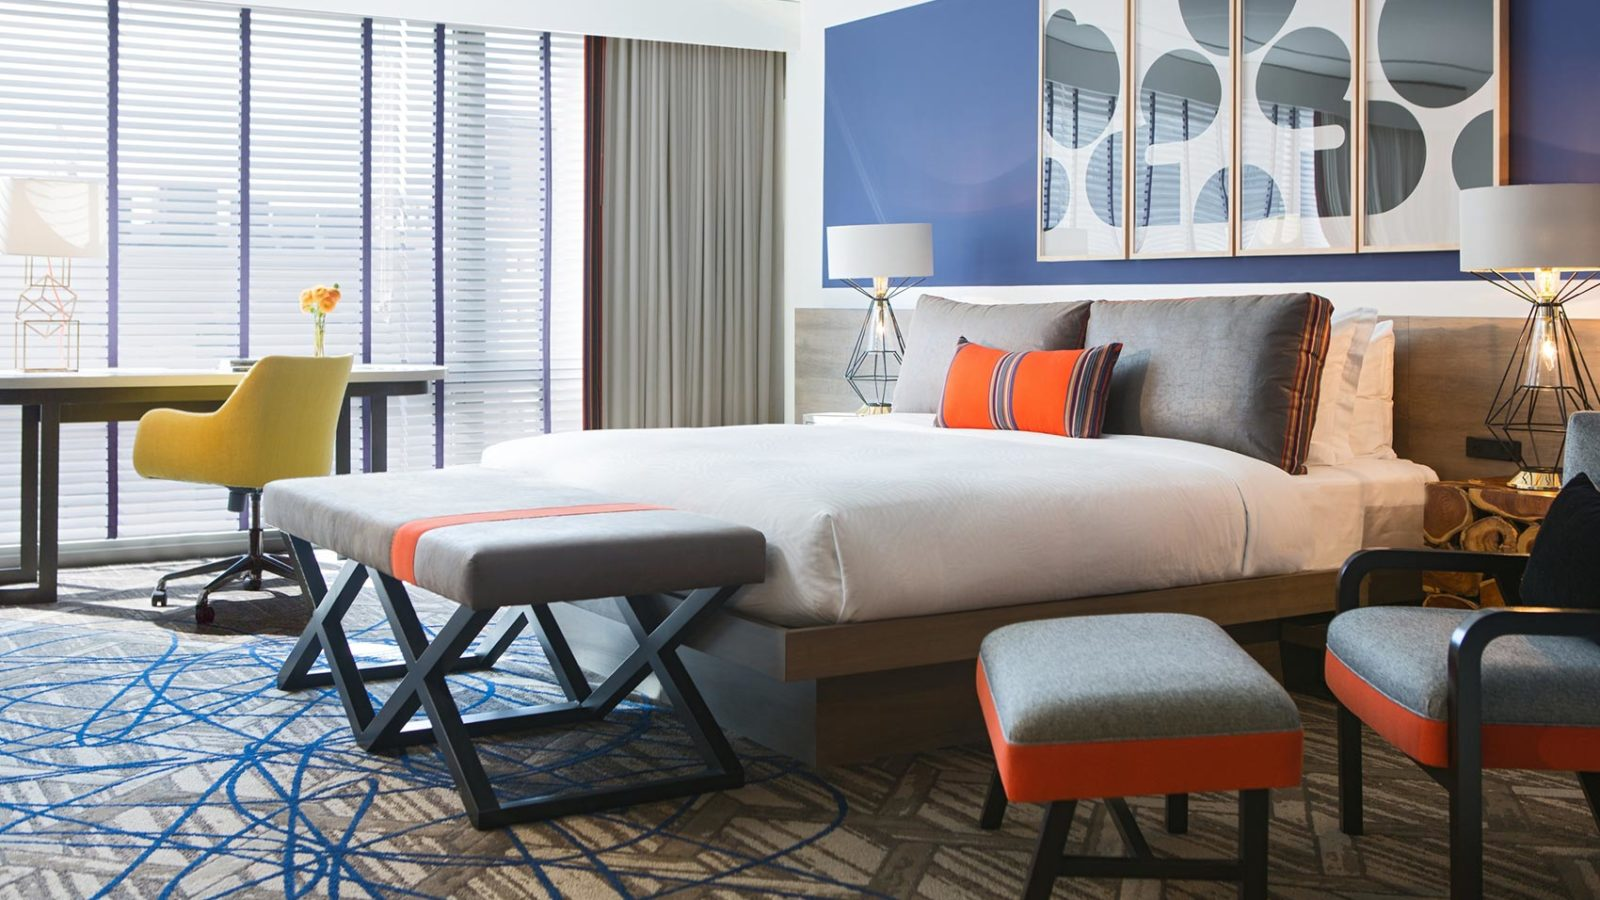 IHG Rewards Q1 2019 Promotion